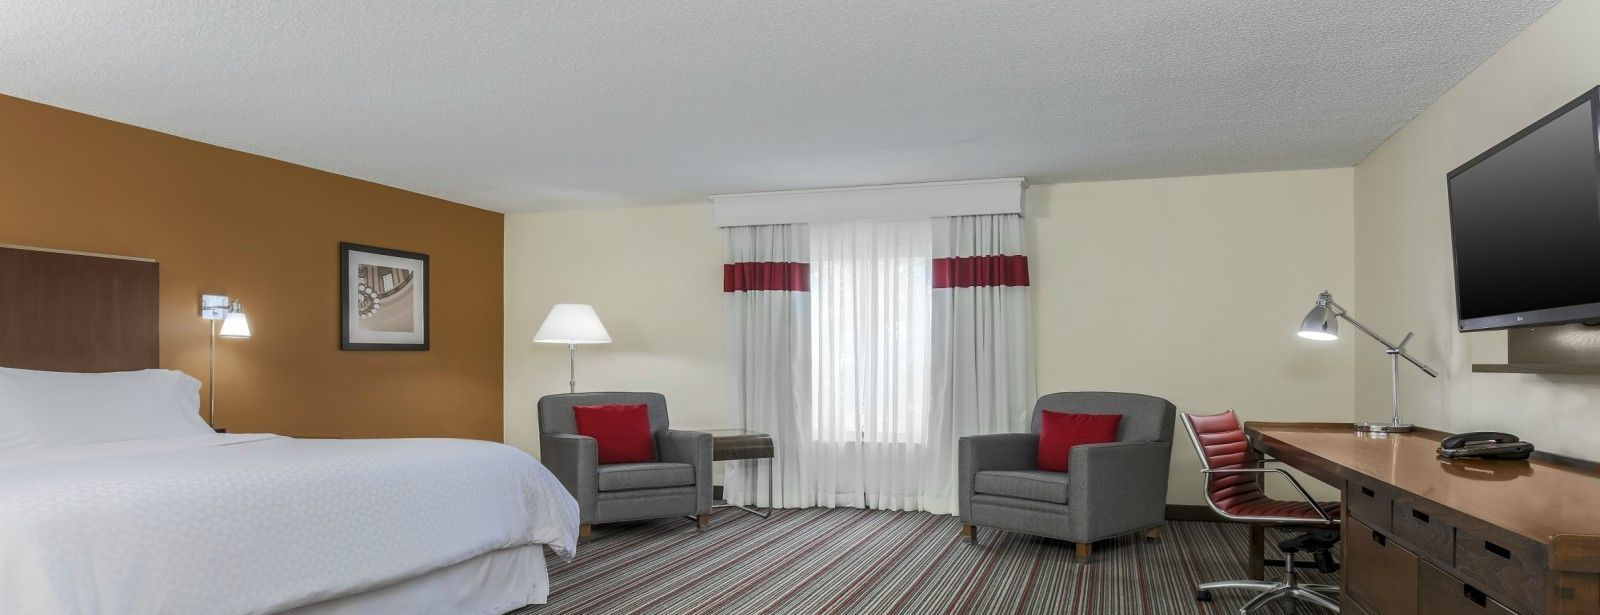 Bentonville AR Accommodations - Junior Suite